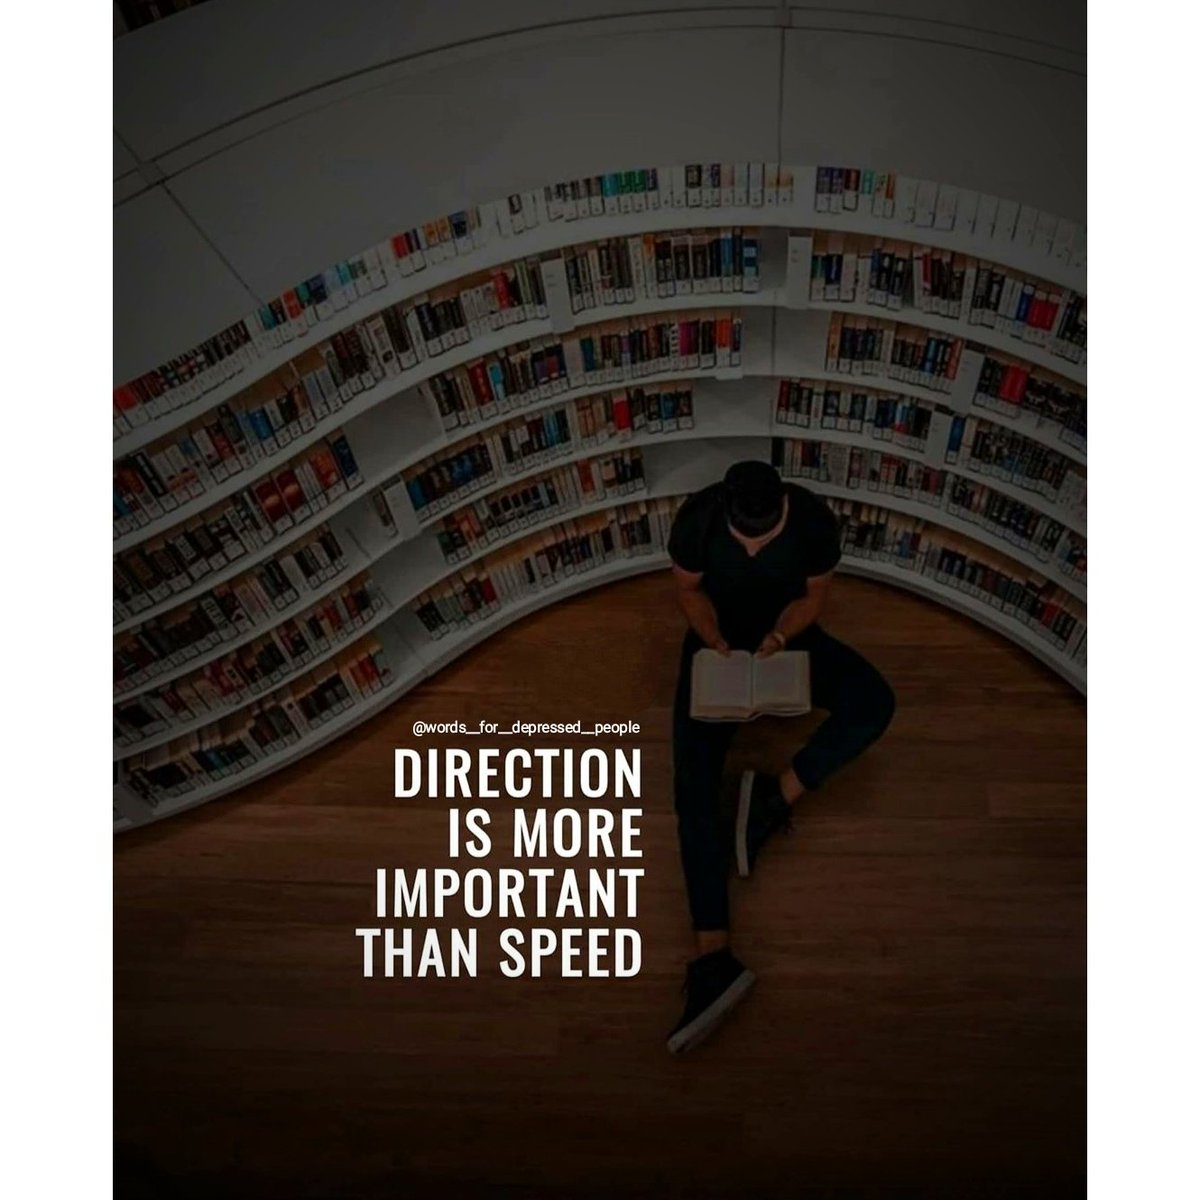 #direction is more #important than #speed . . . . . #MotivationalQuotes #motivated_post #motivationalposts #motivationalwednesday #motivatingquotes #motivational #speeddown #rightdirection #quotes #quotesoflife #quoteoftheday #DigitalIndia #digitalworld #speedshop #Indiapic.twitter.com/Pc2Ko0Uyqu